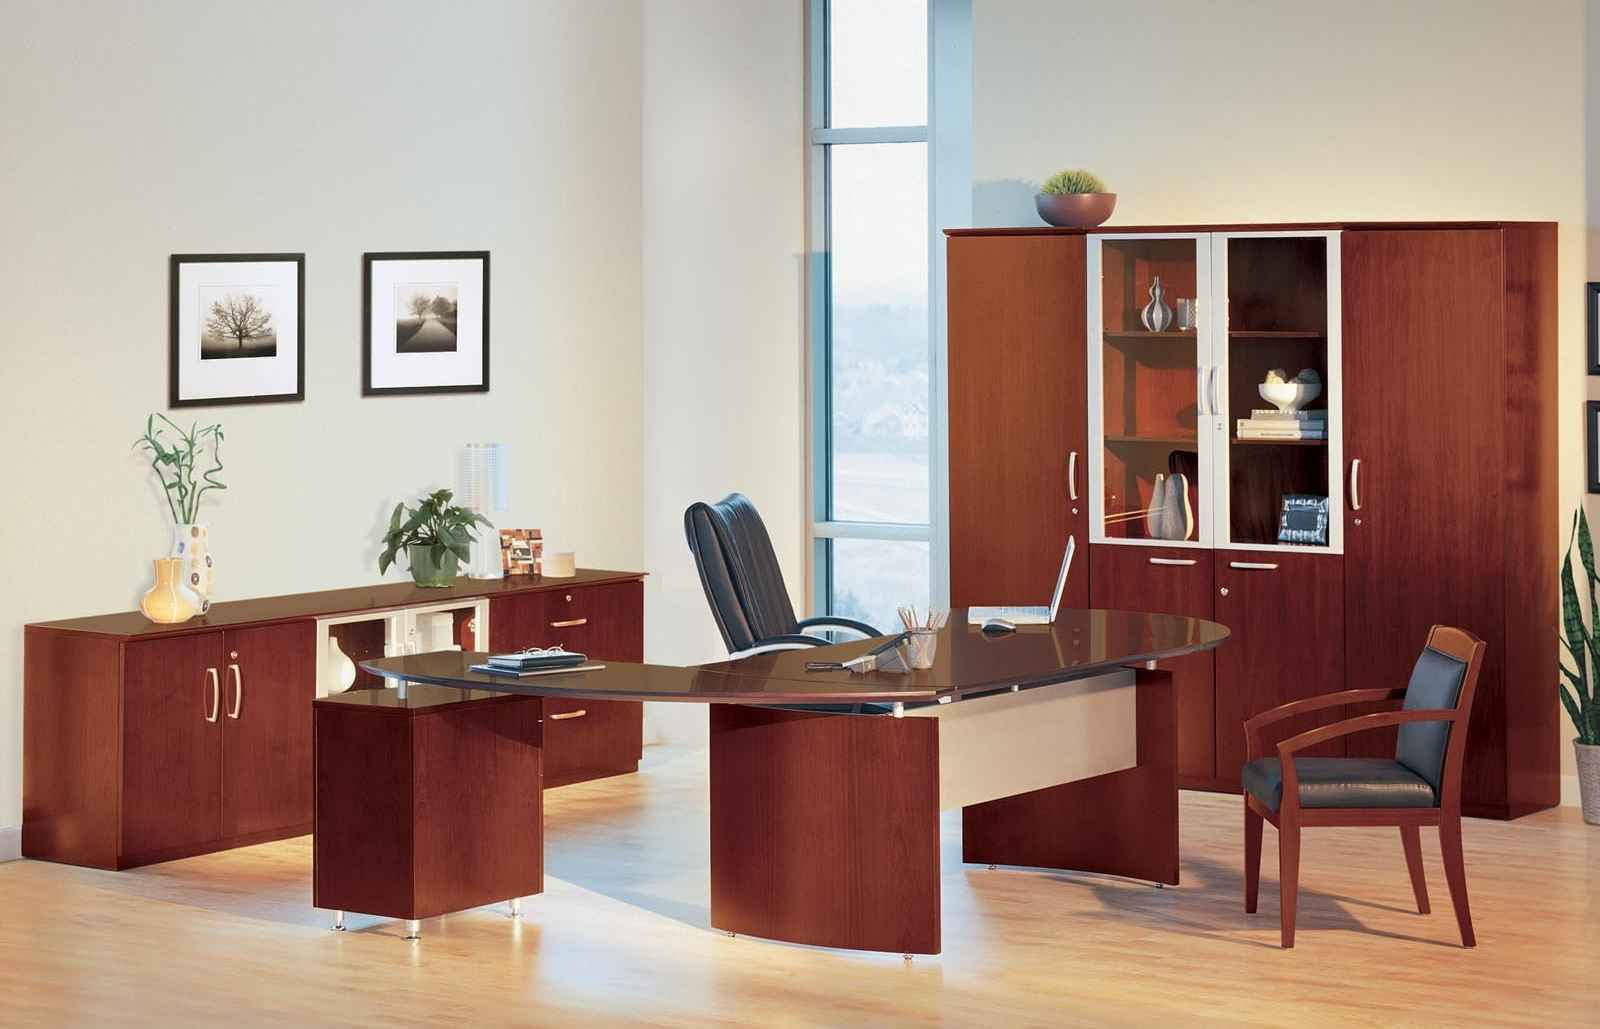 Napoli Executive Wooden Glass Office Suite Furniture